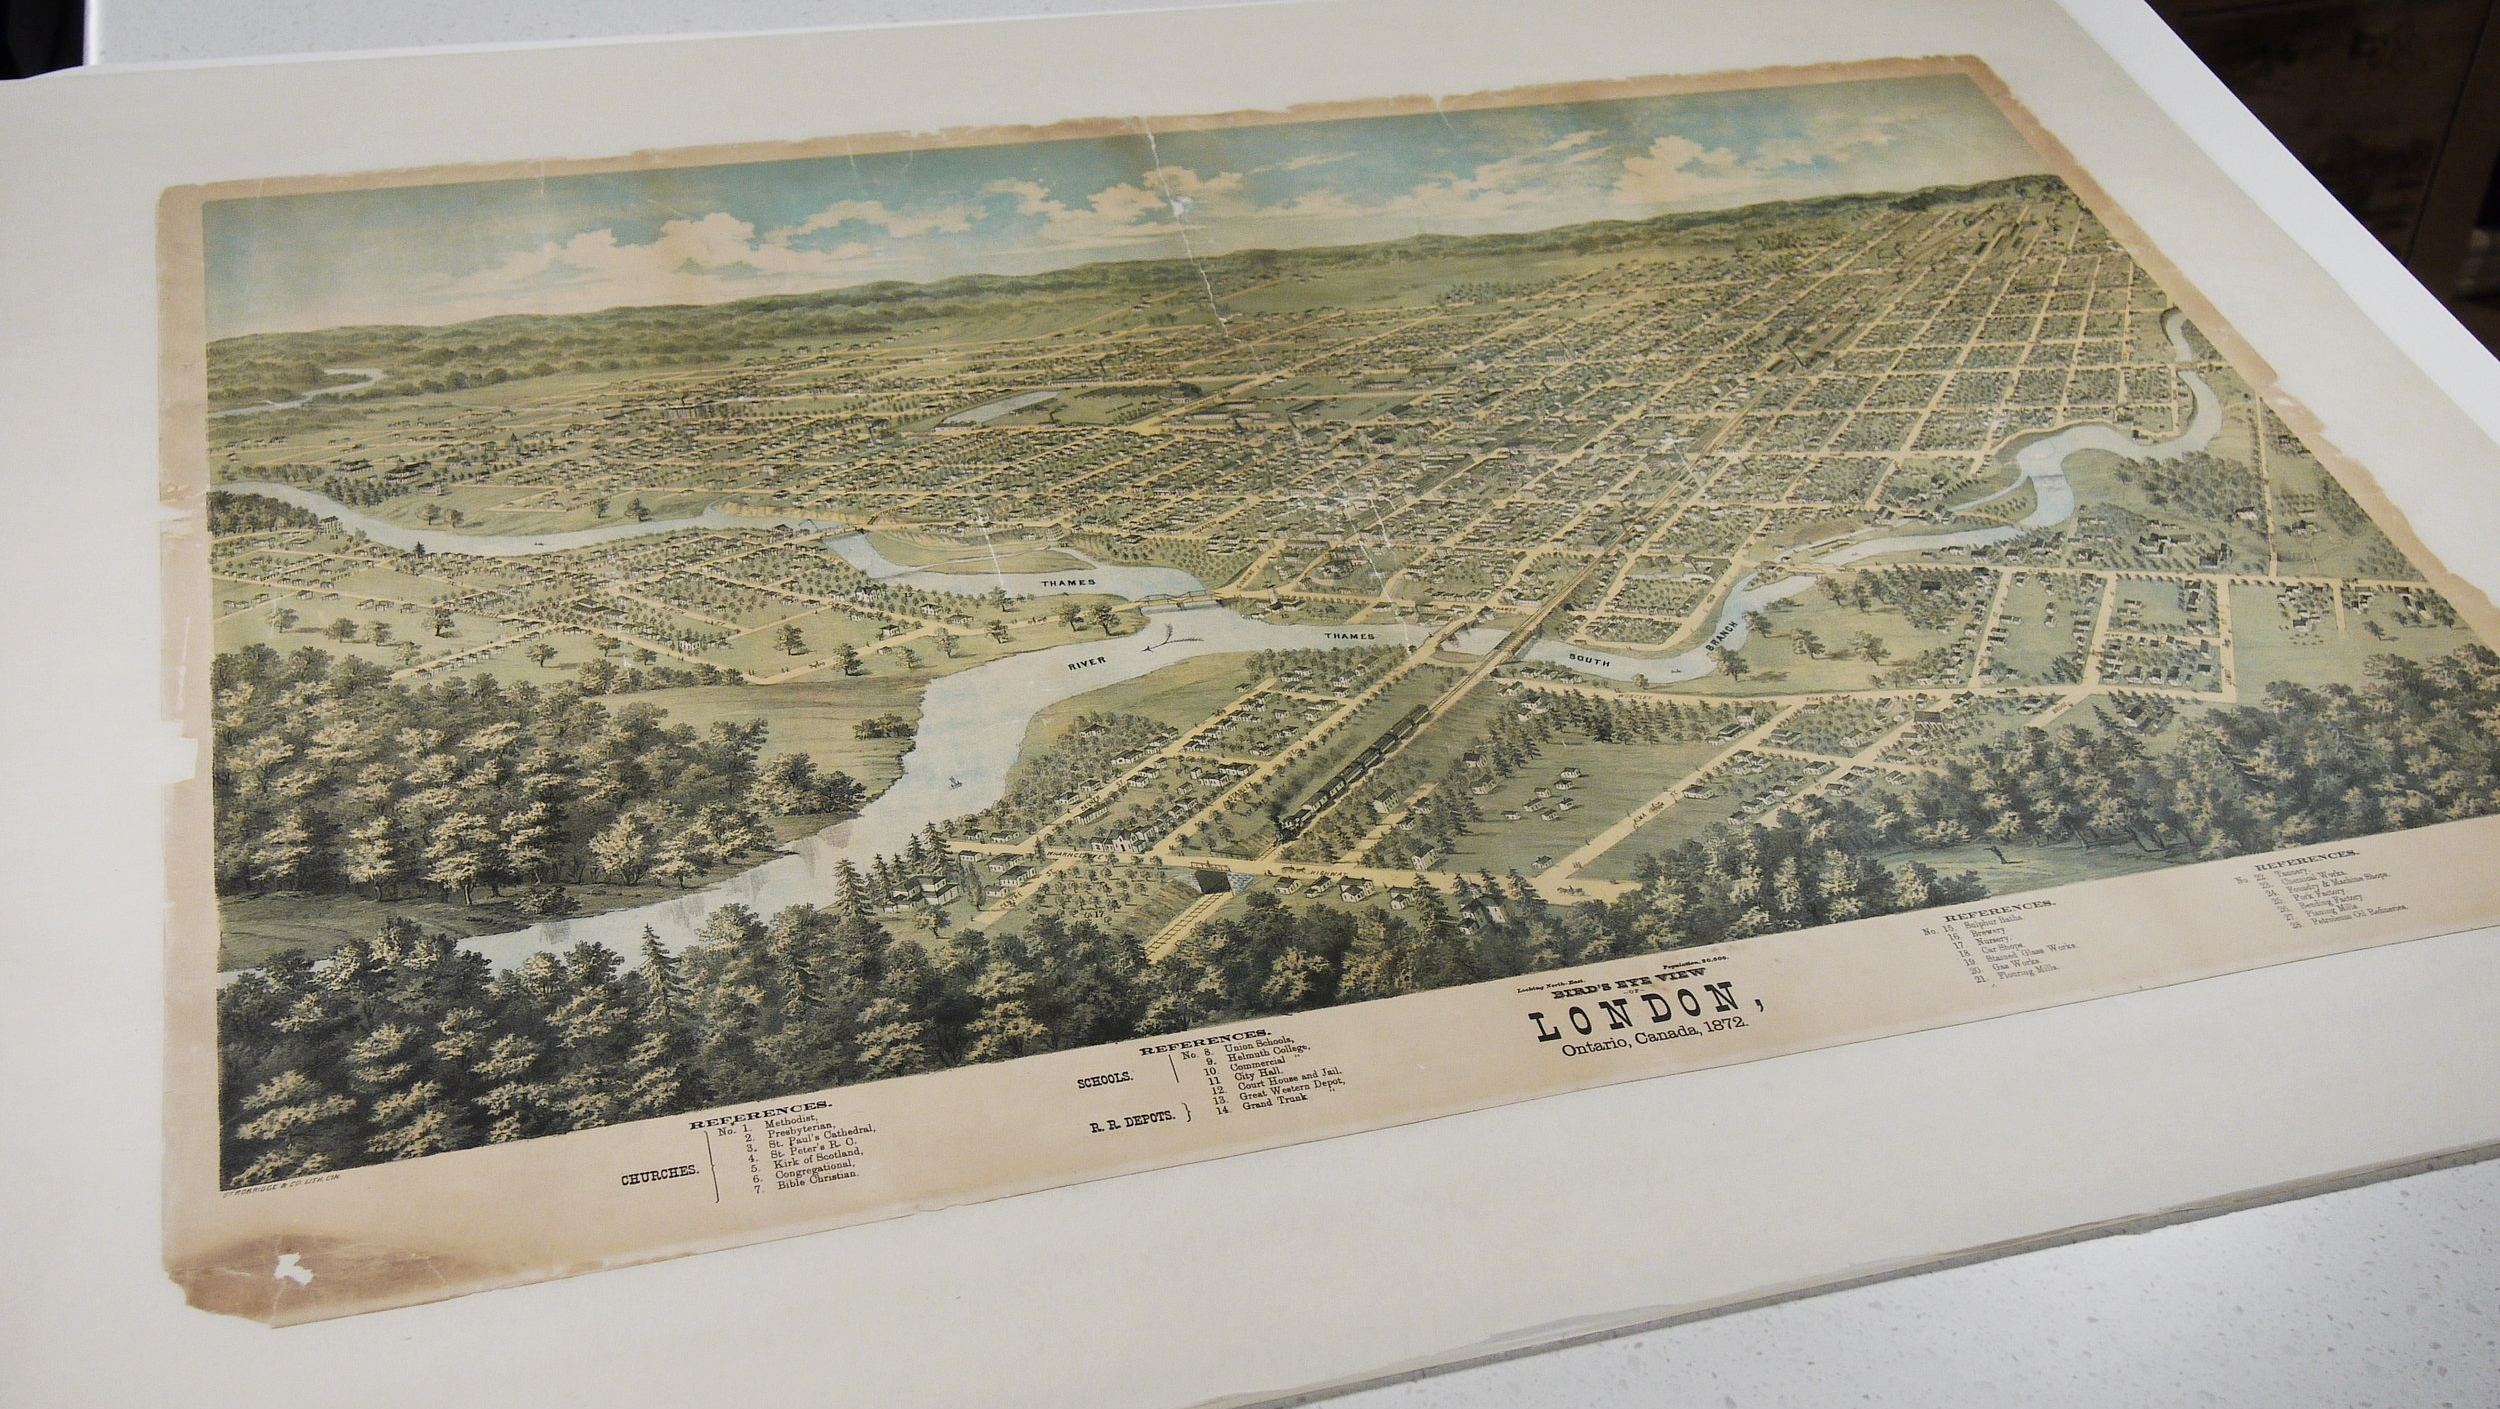 The Bird's Eye View of London, after washing and lining on a stable Japanese paper backing.